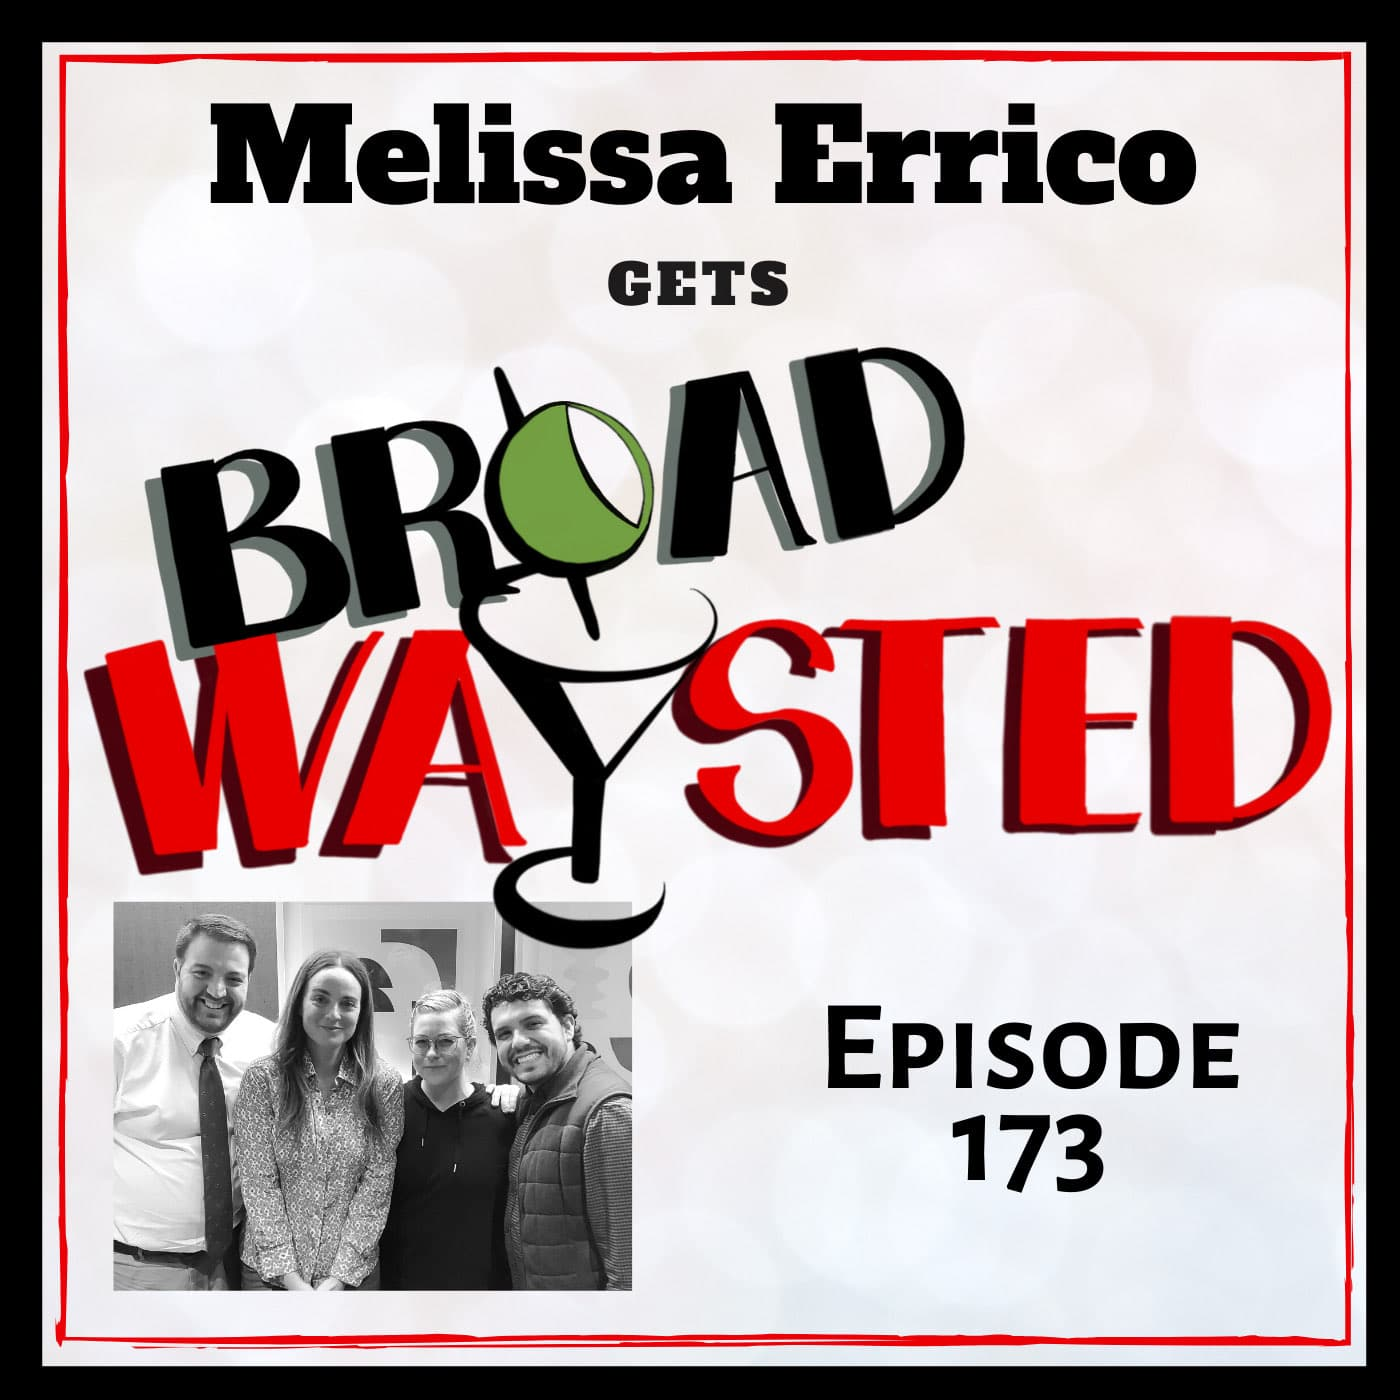 Broadwaysted Ep173 Melissa Errico